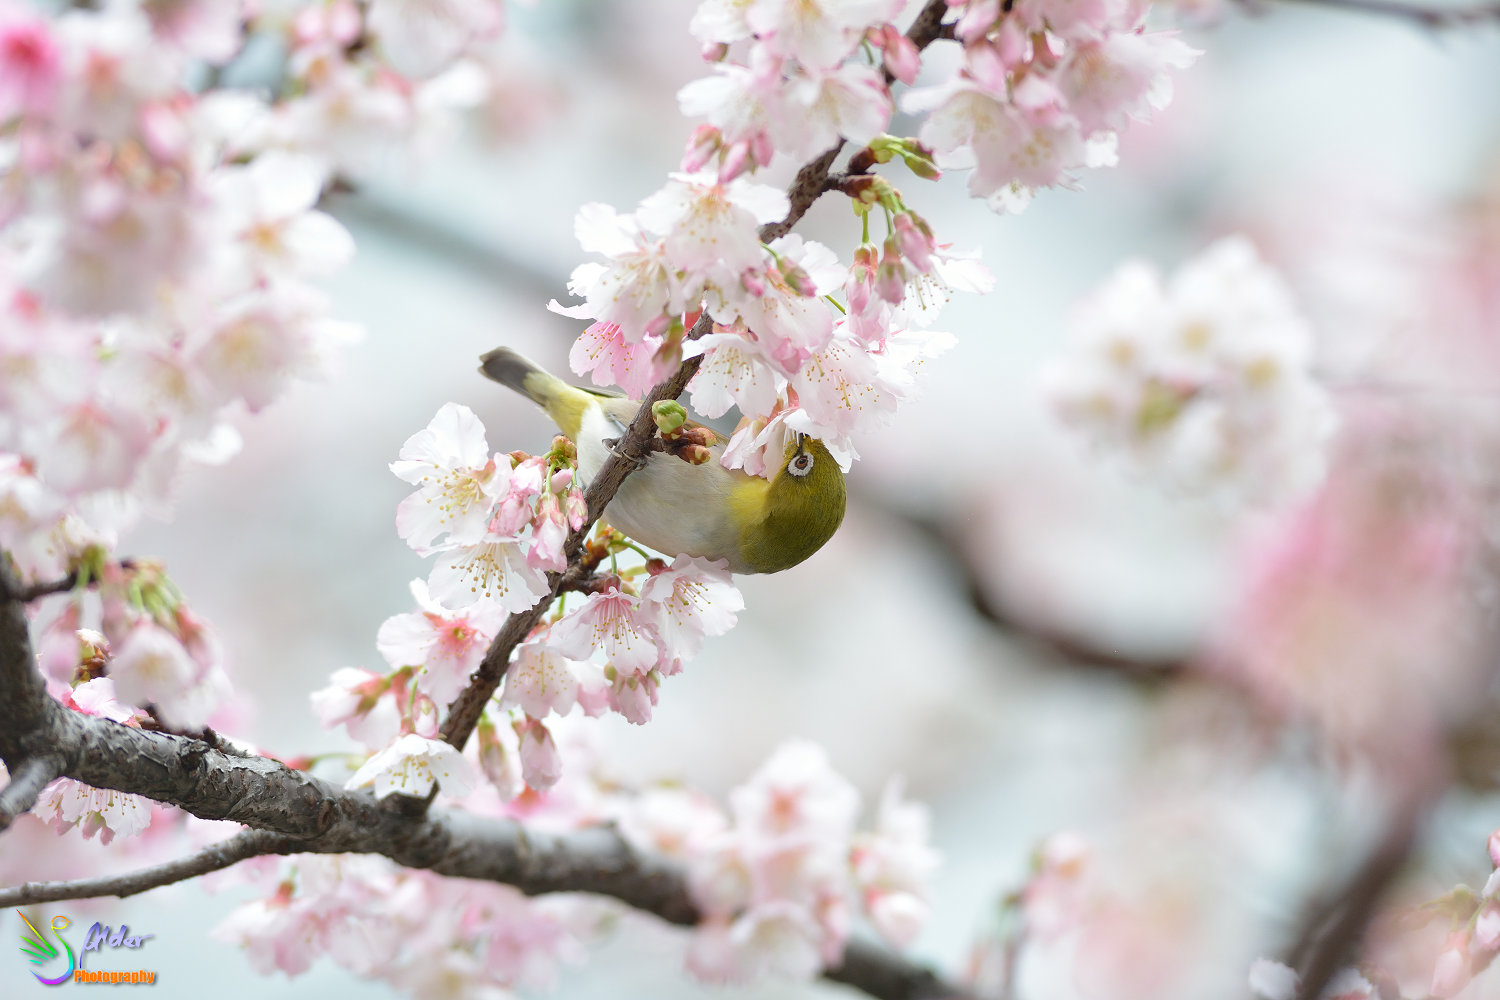 Sakura_White-eye_6725